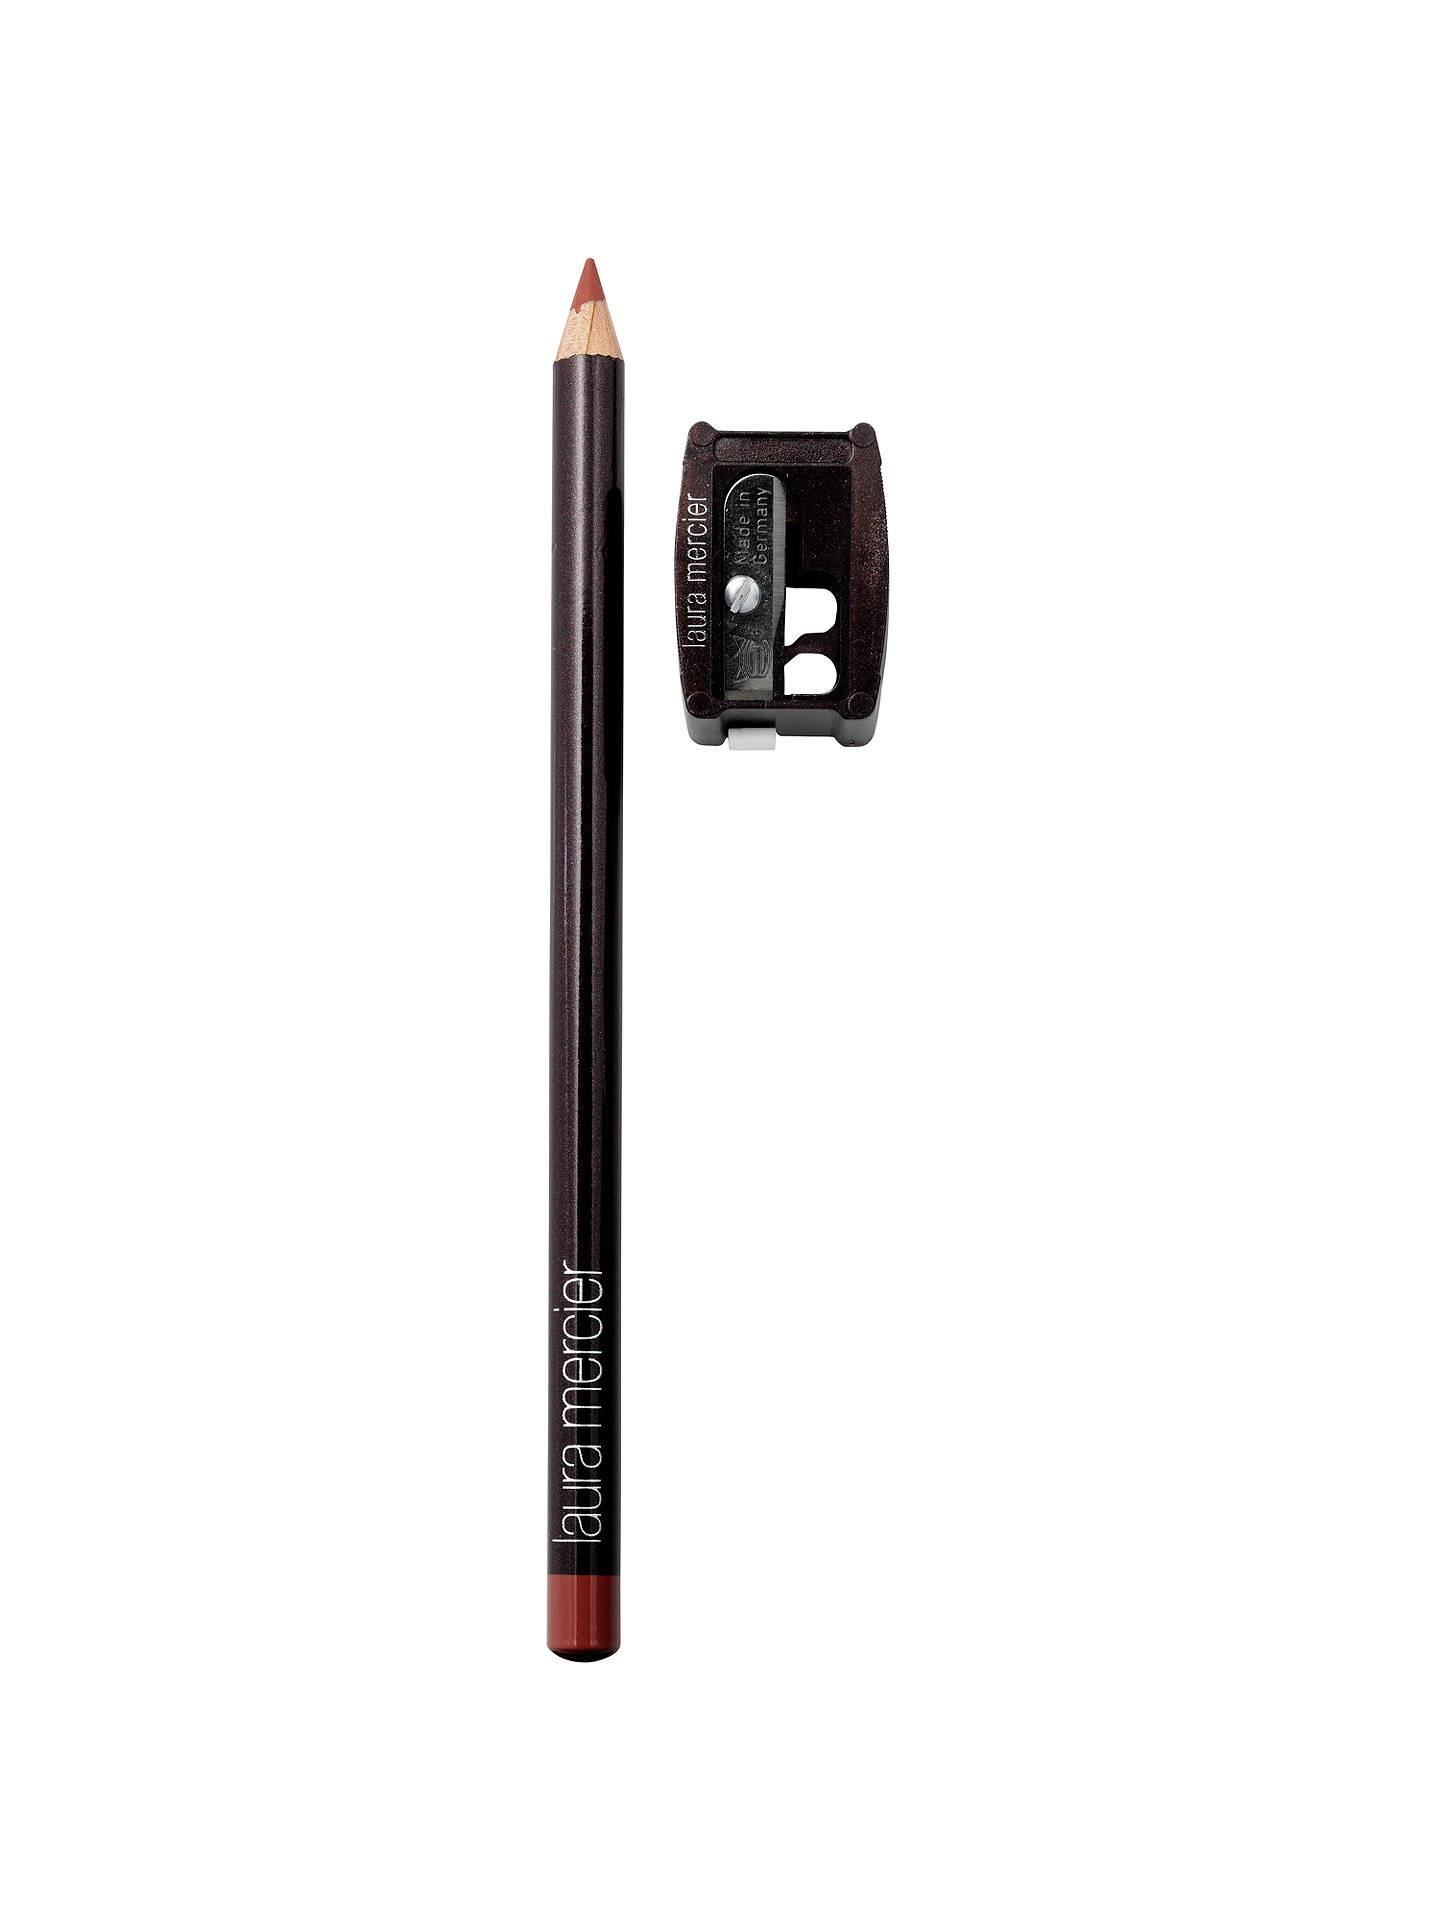 BuyLaura Mercier Lip Pencil, Chestnut Online at johnlewis.com